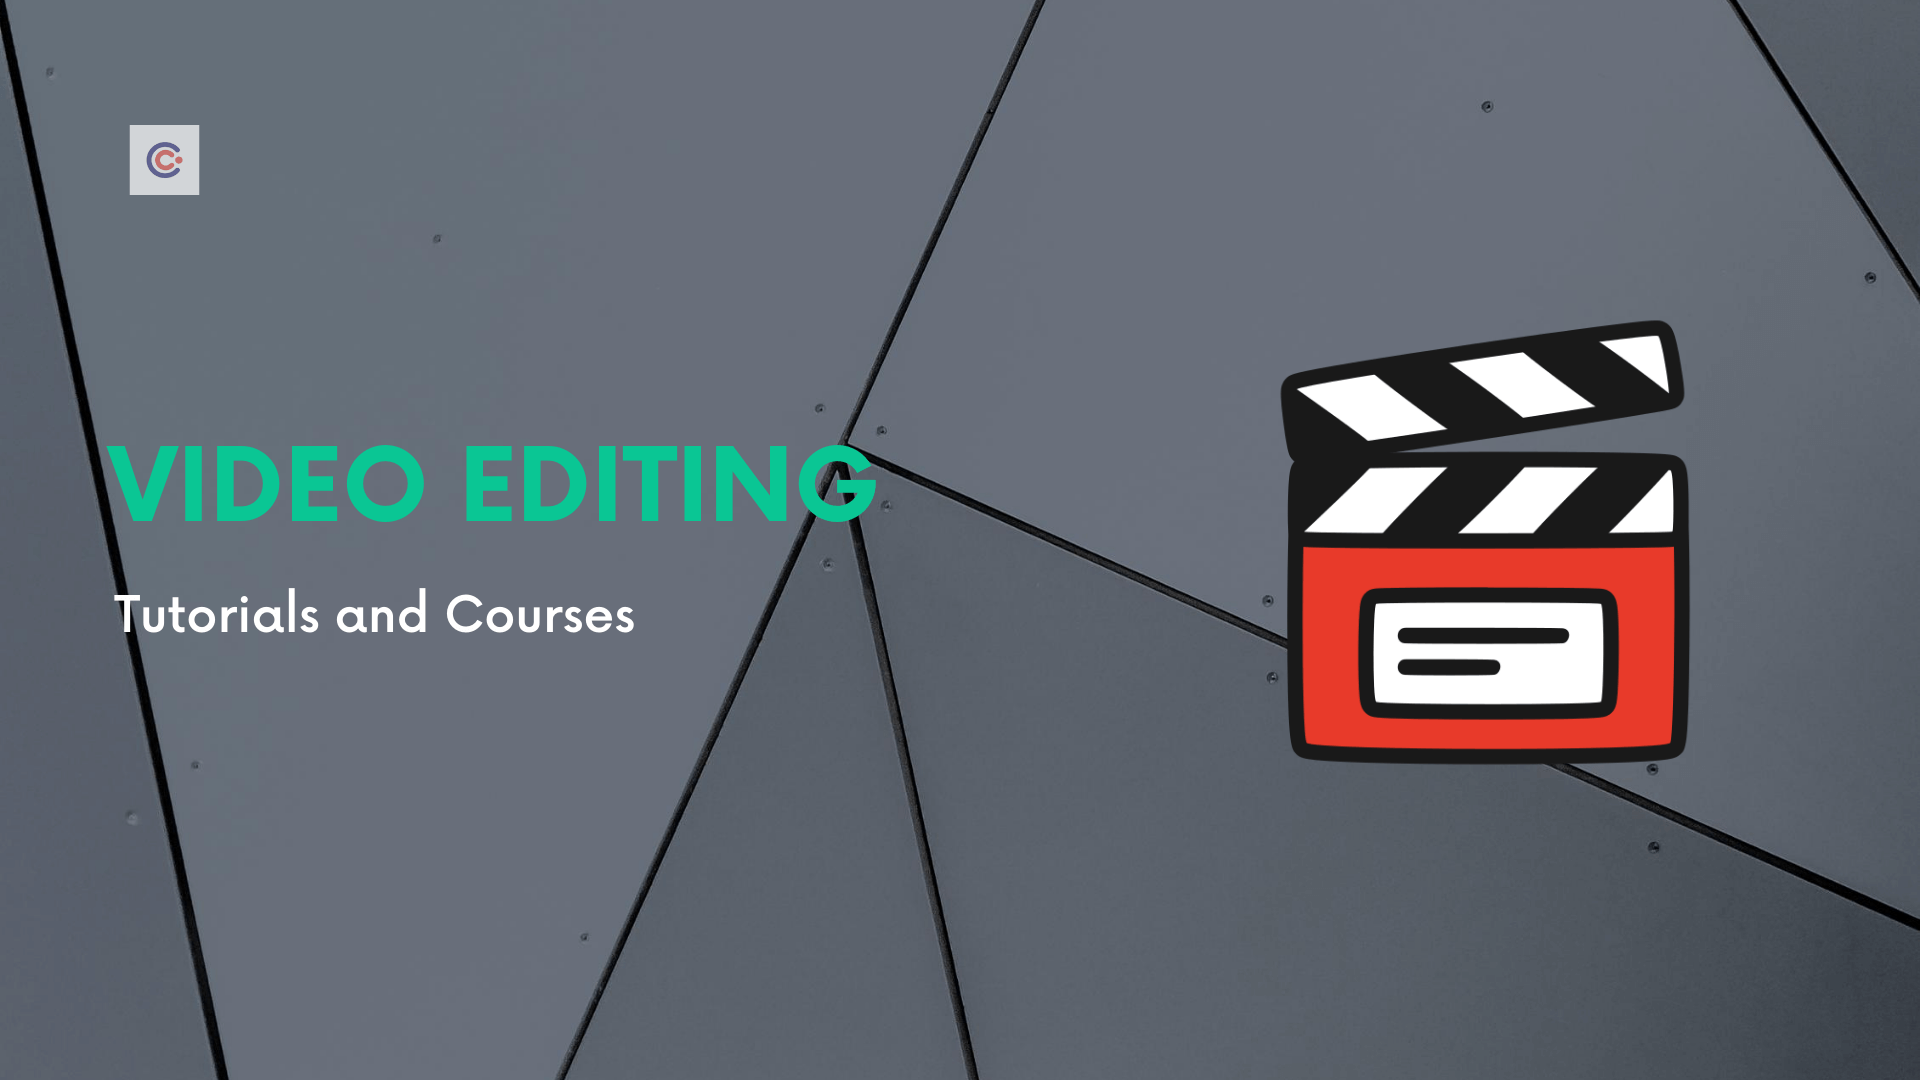 7 Best Video editing Classes in 2021 - Learn Video editing Online